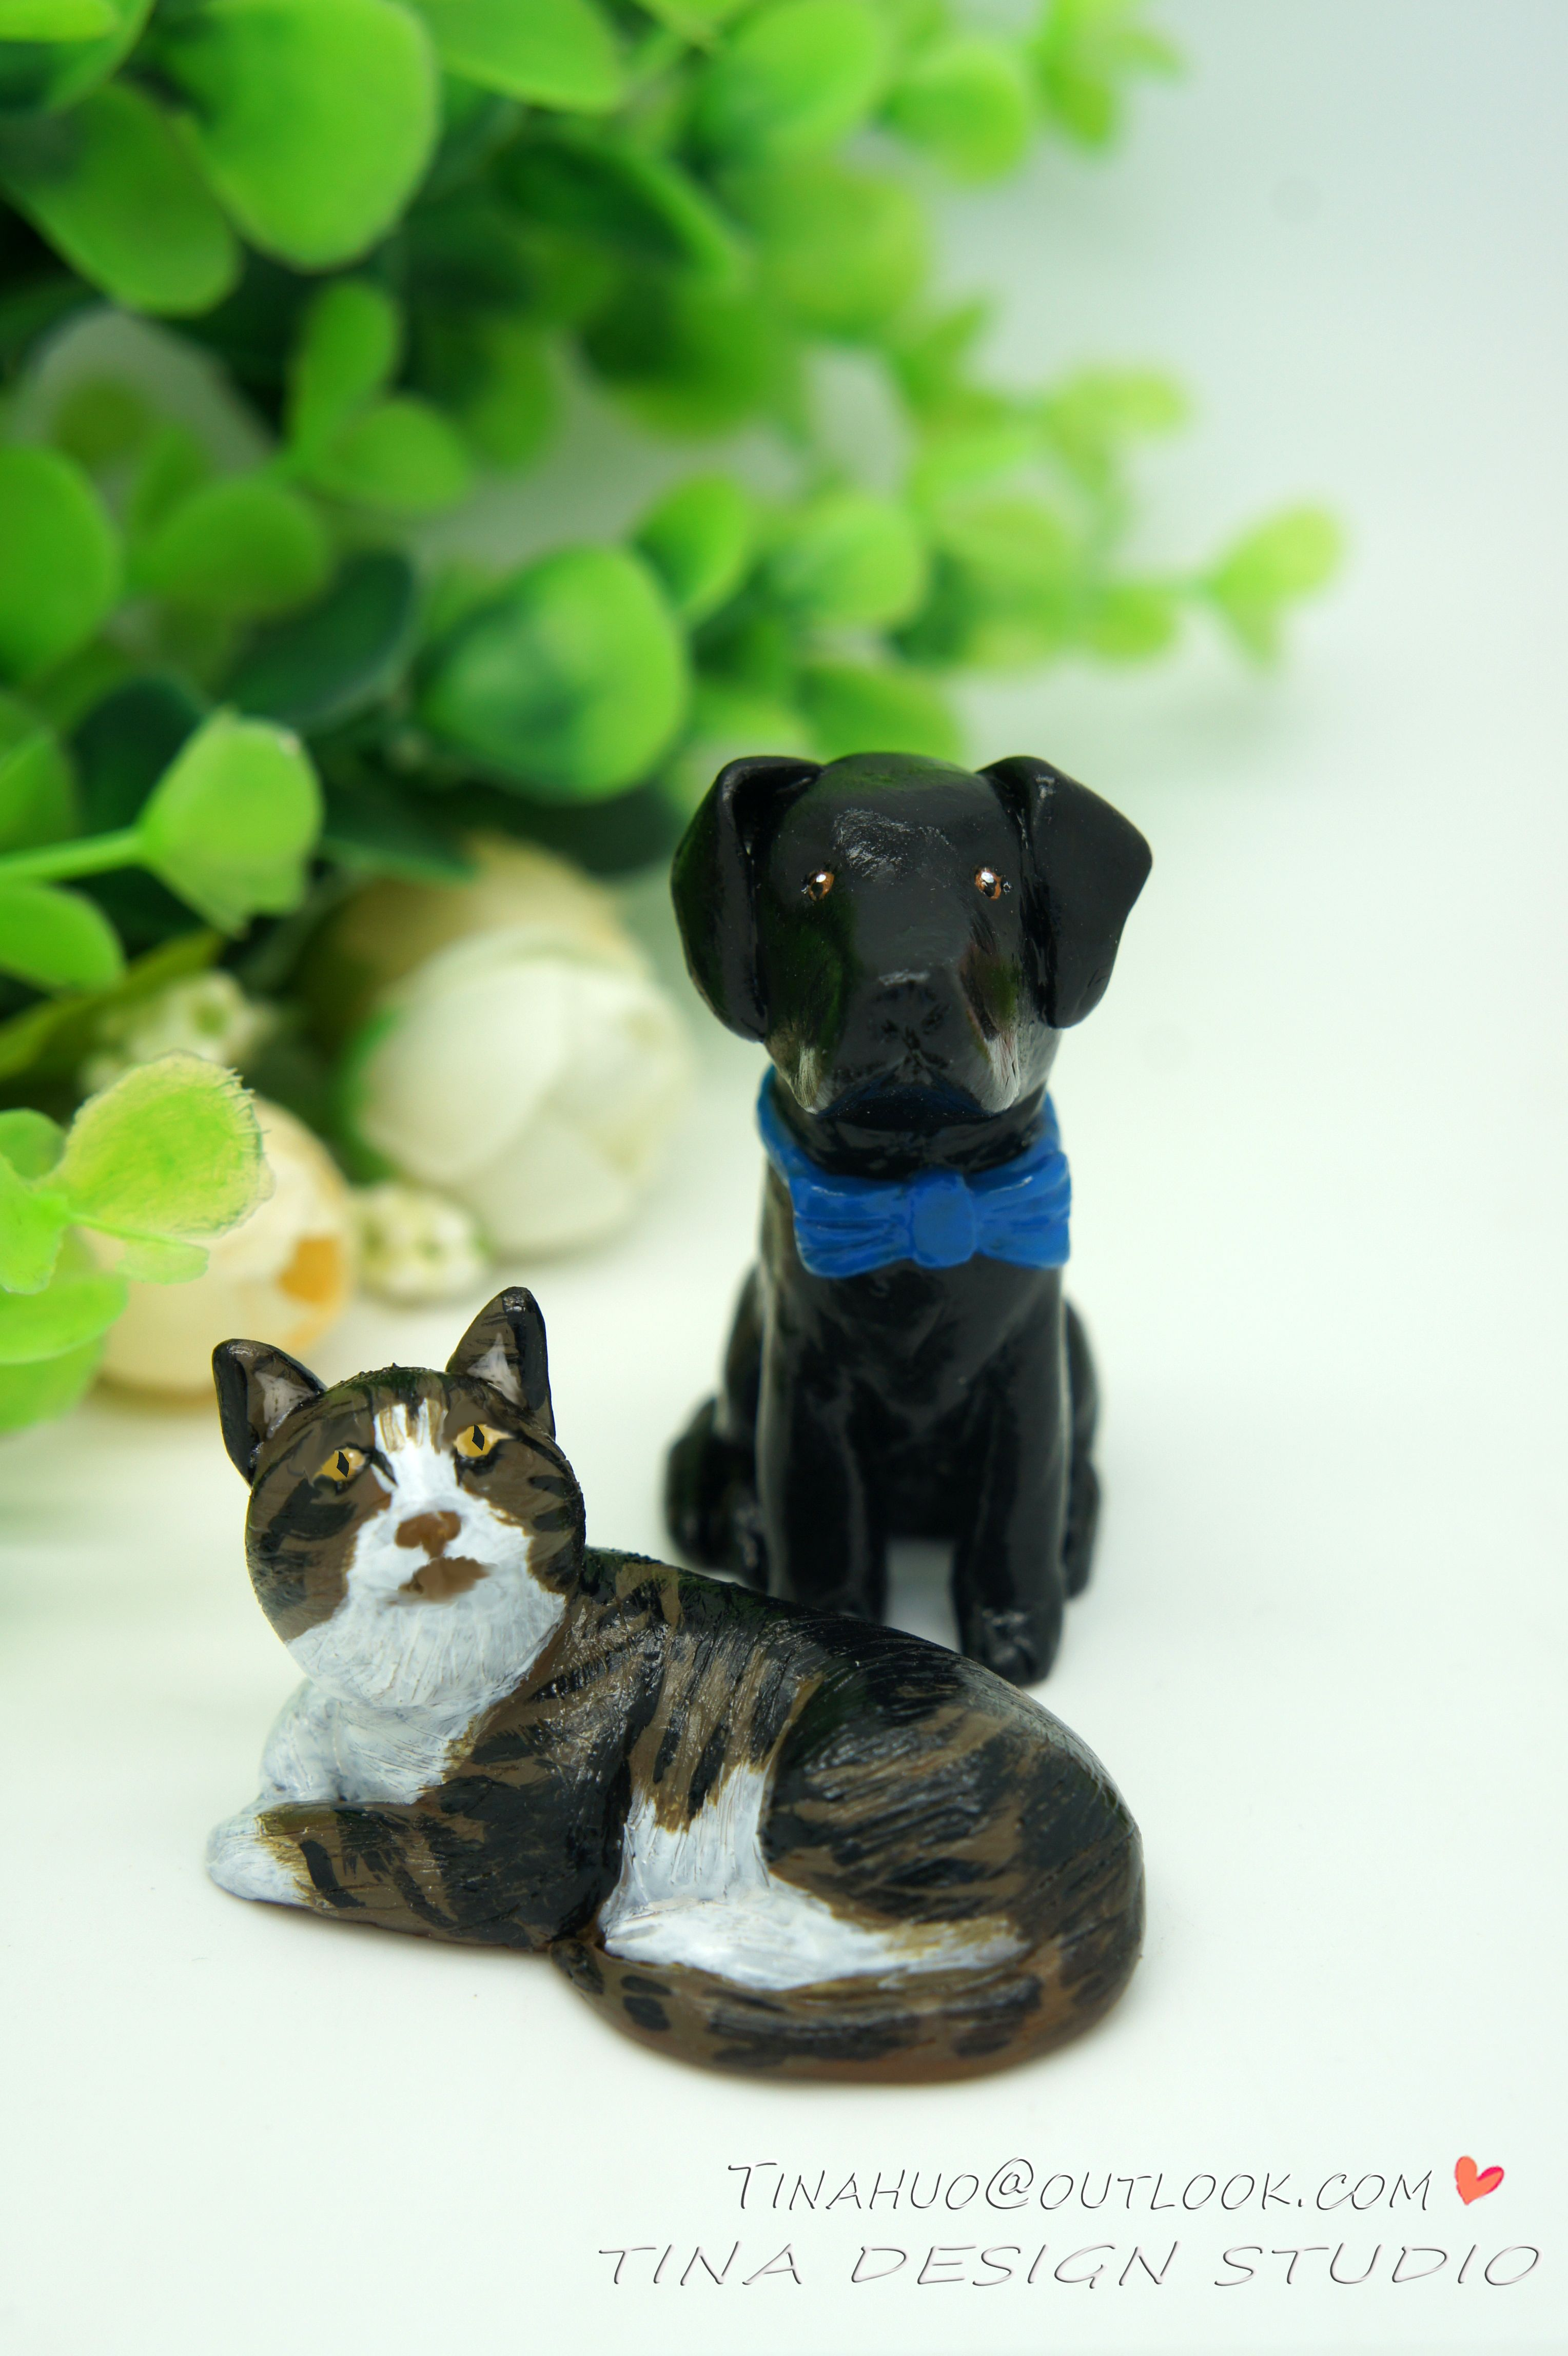 Dog Wedding Cake Toppers-Animal Wedding Cake Toppers-Pets Cake Toppers